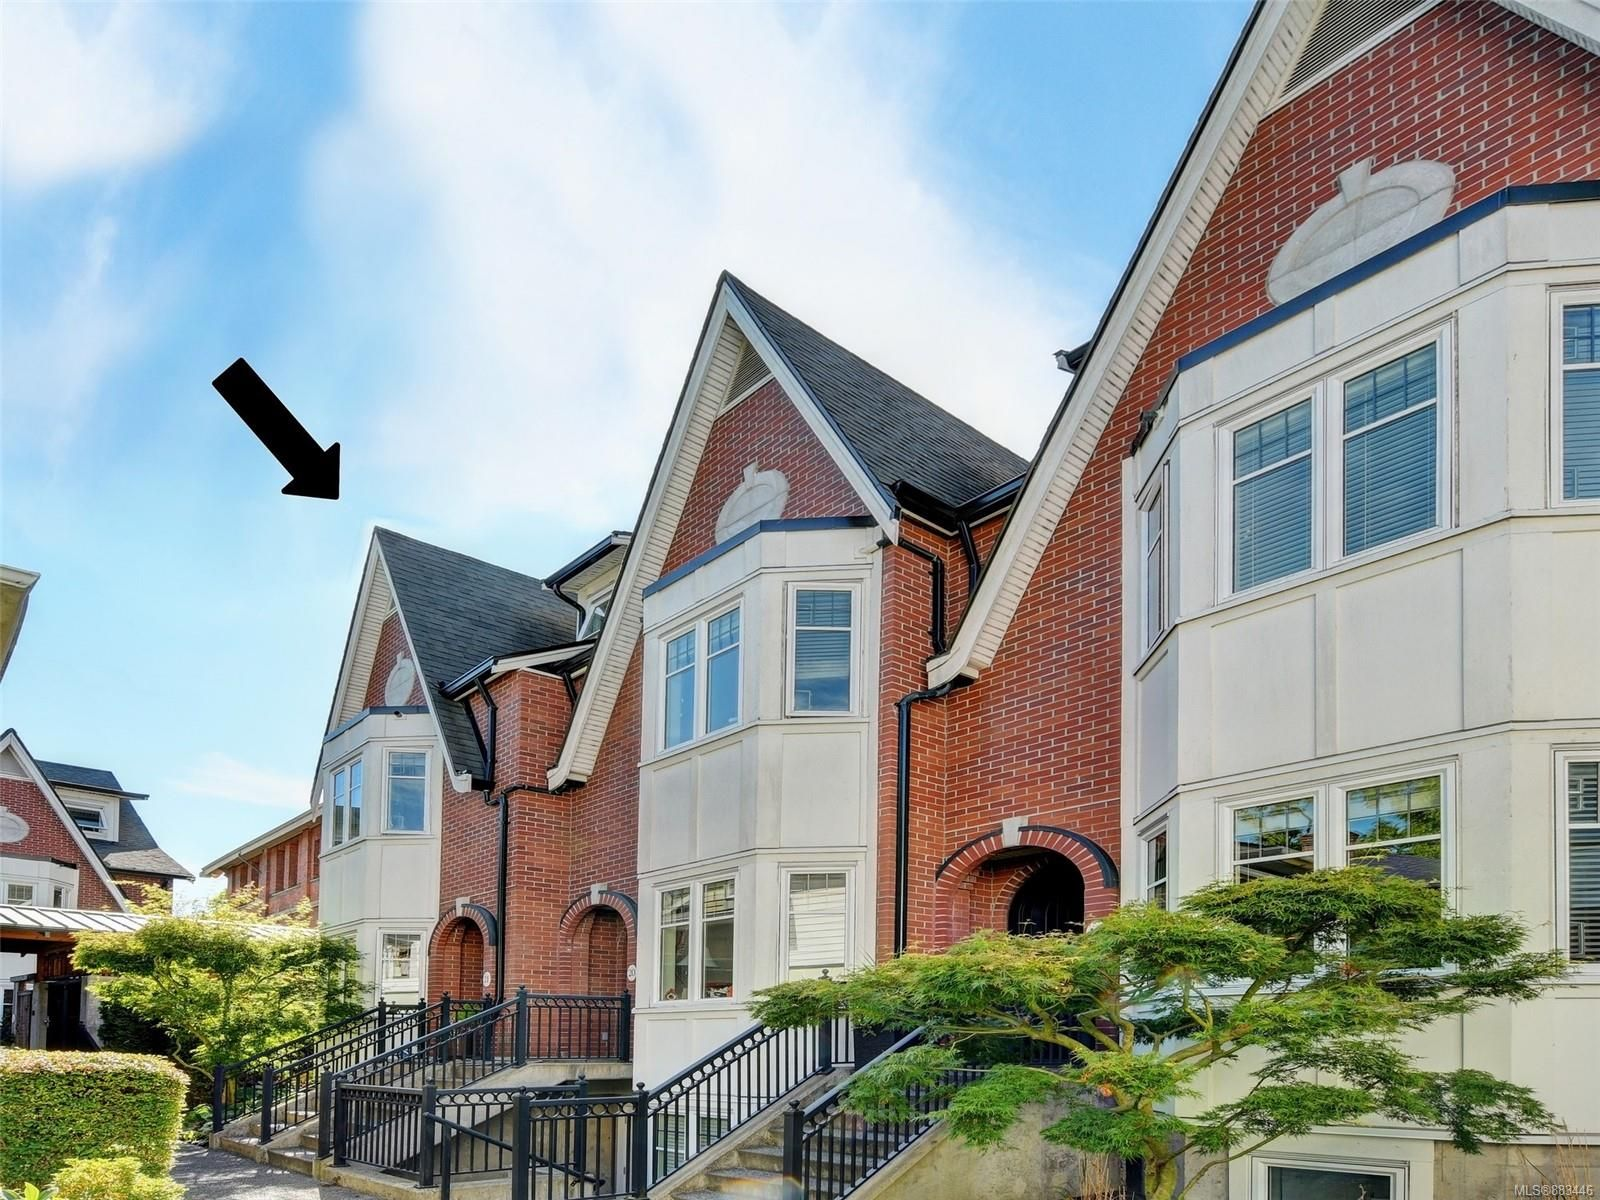 Main Photo: 21 675 Superior St in : Vi James Bay Row/Townhouse for sale (Victoria)  : MLS®# 883446